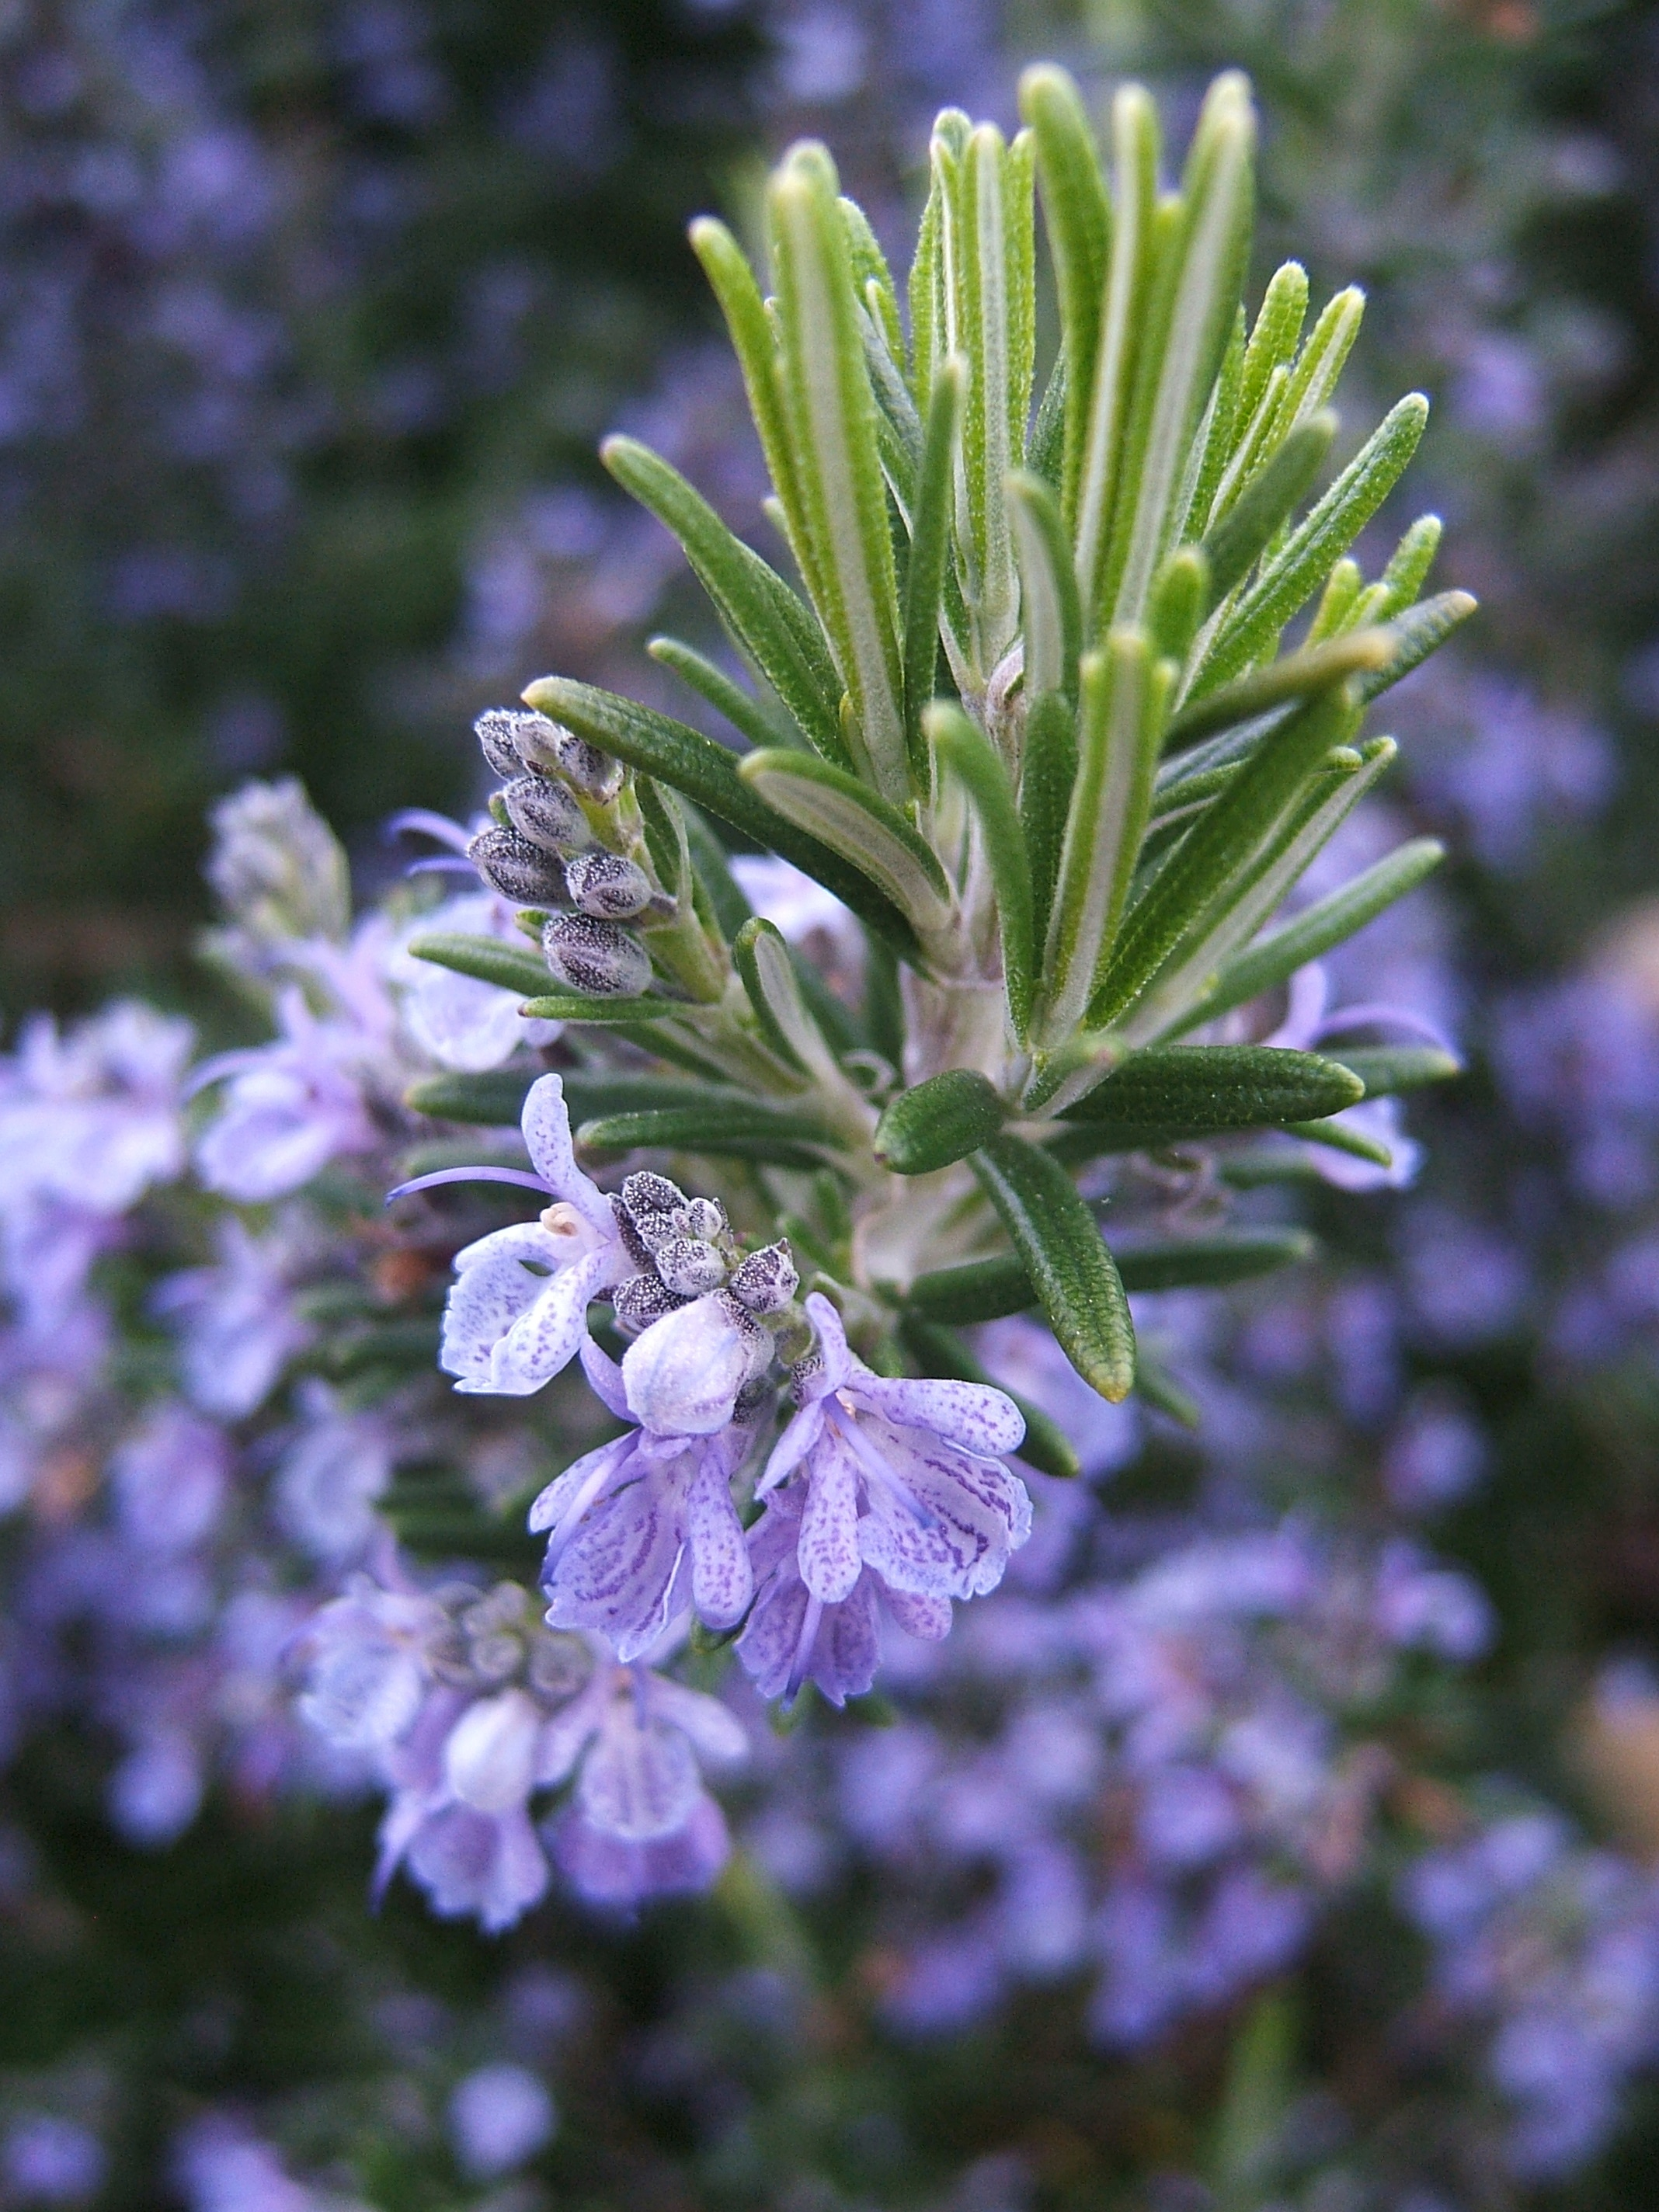 Permaculture Plants: Rosemary | Temperate Climate Permaculture